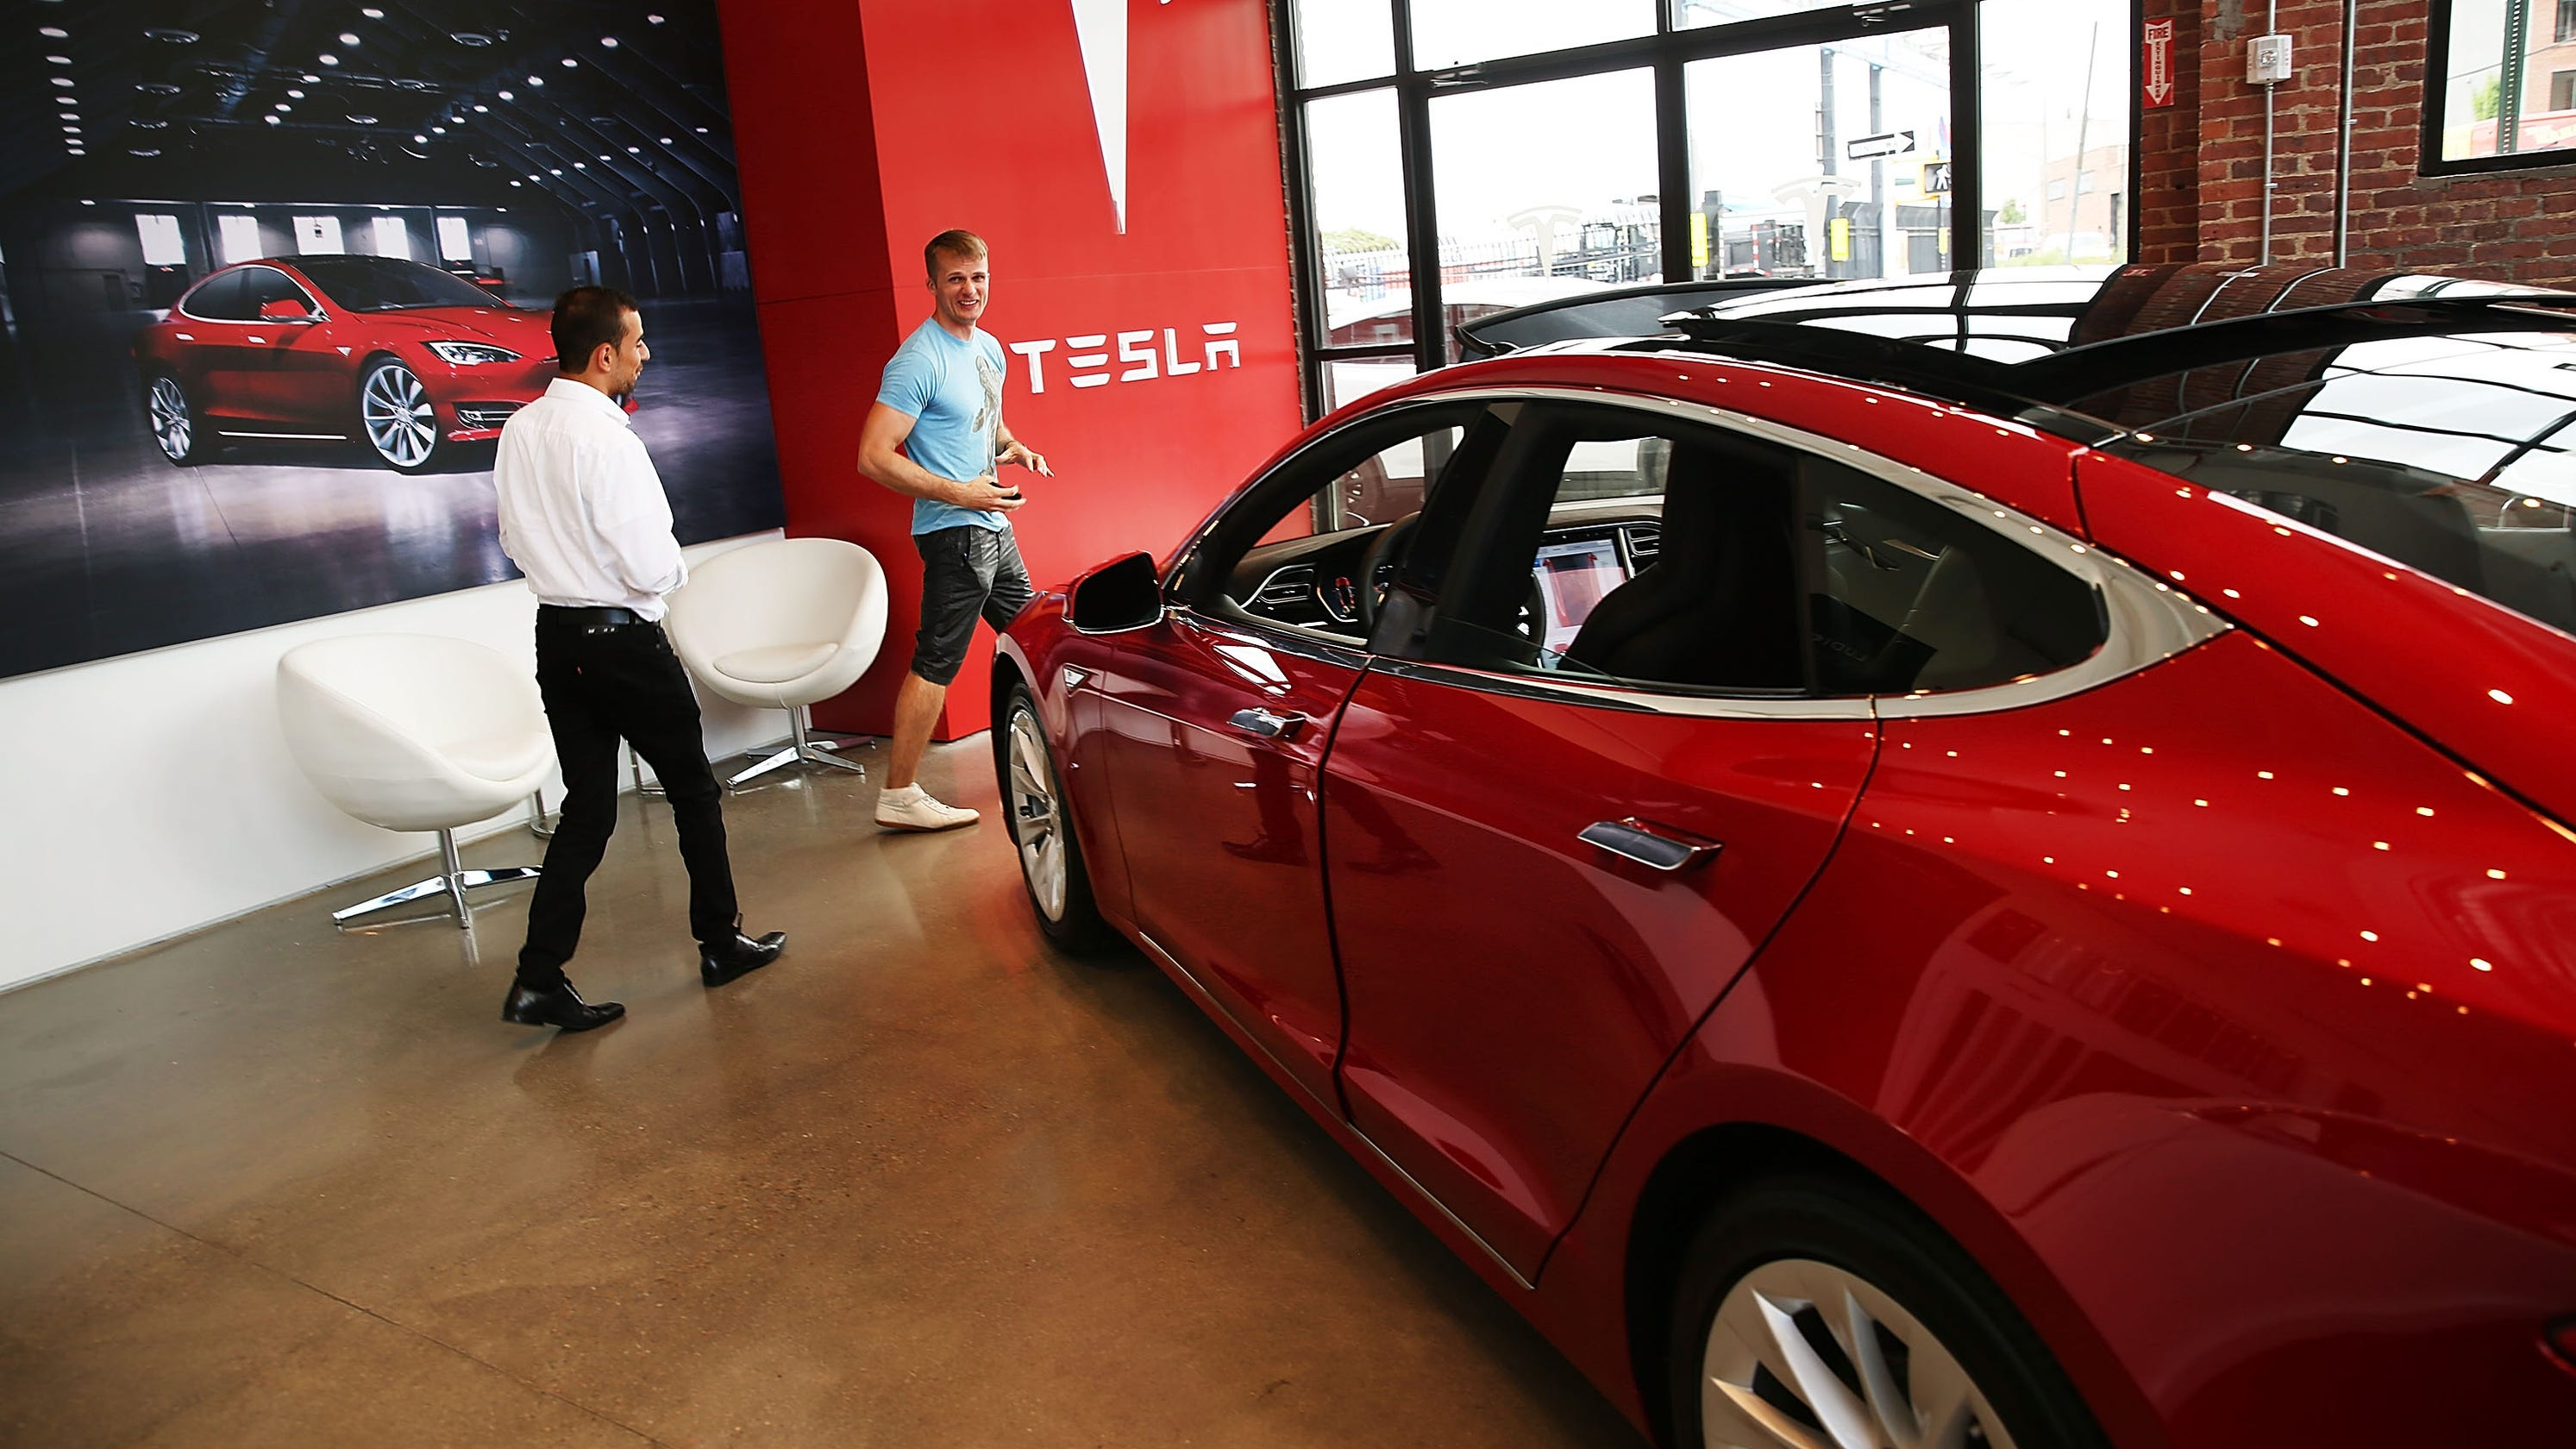 Tesla delivers profit 'many' thought 'impossible,' CEO Elon